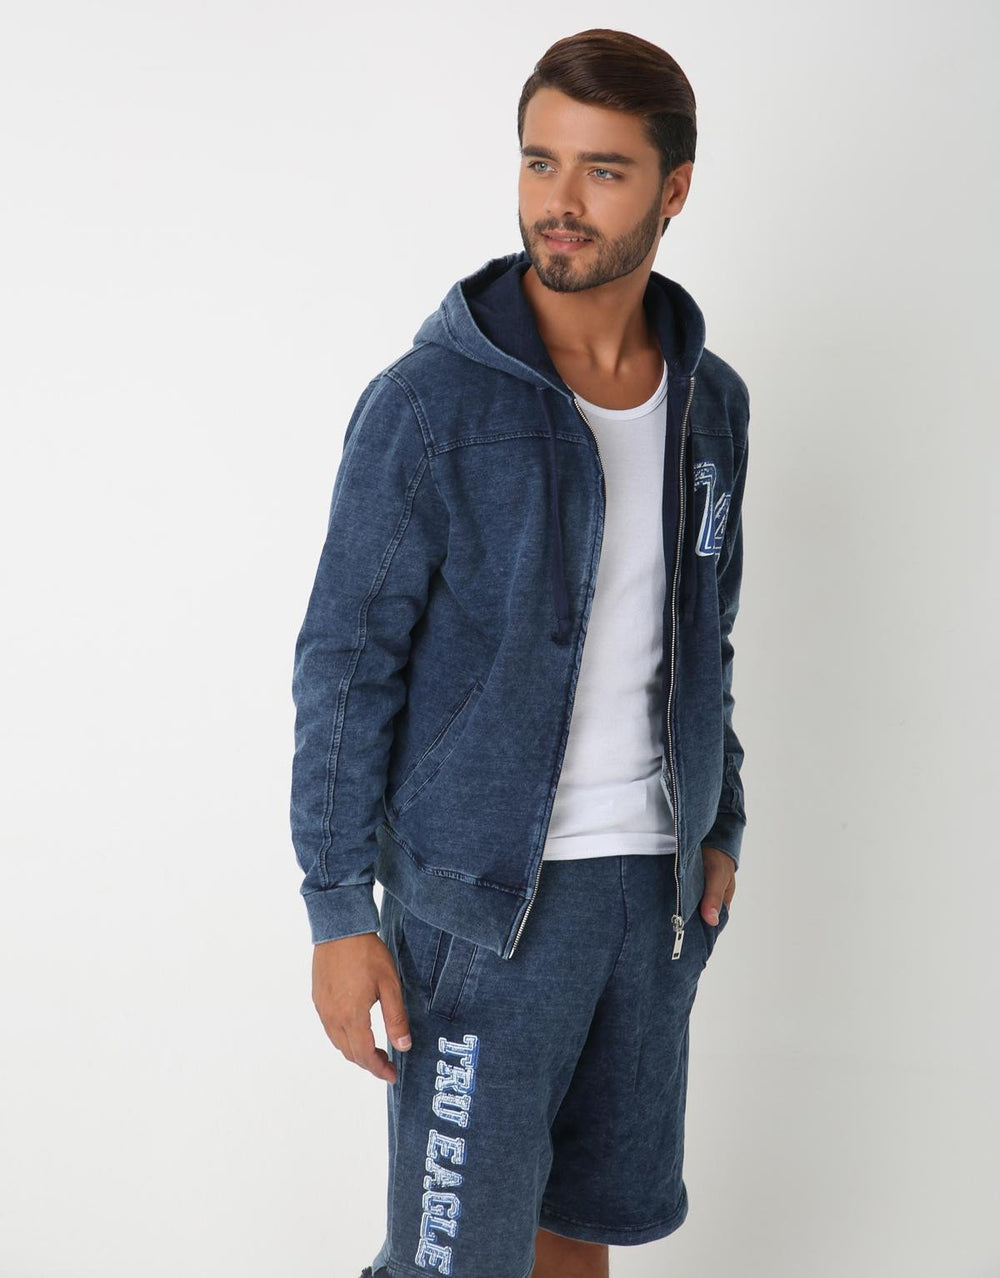 Kar Blue Chic Sweatshirt for Men